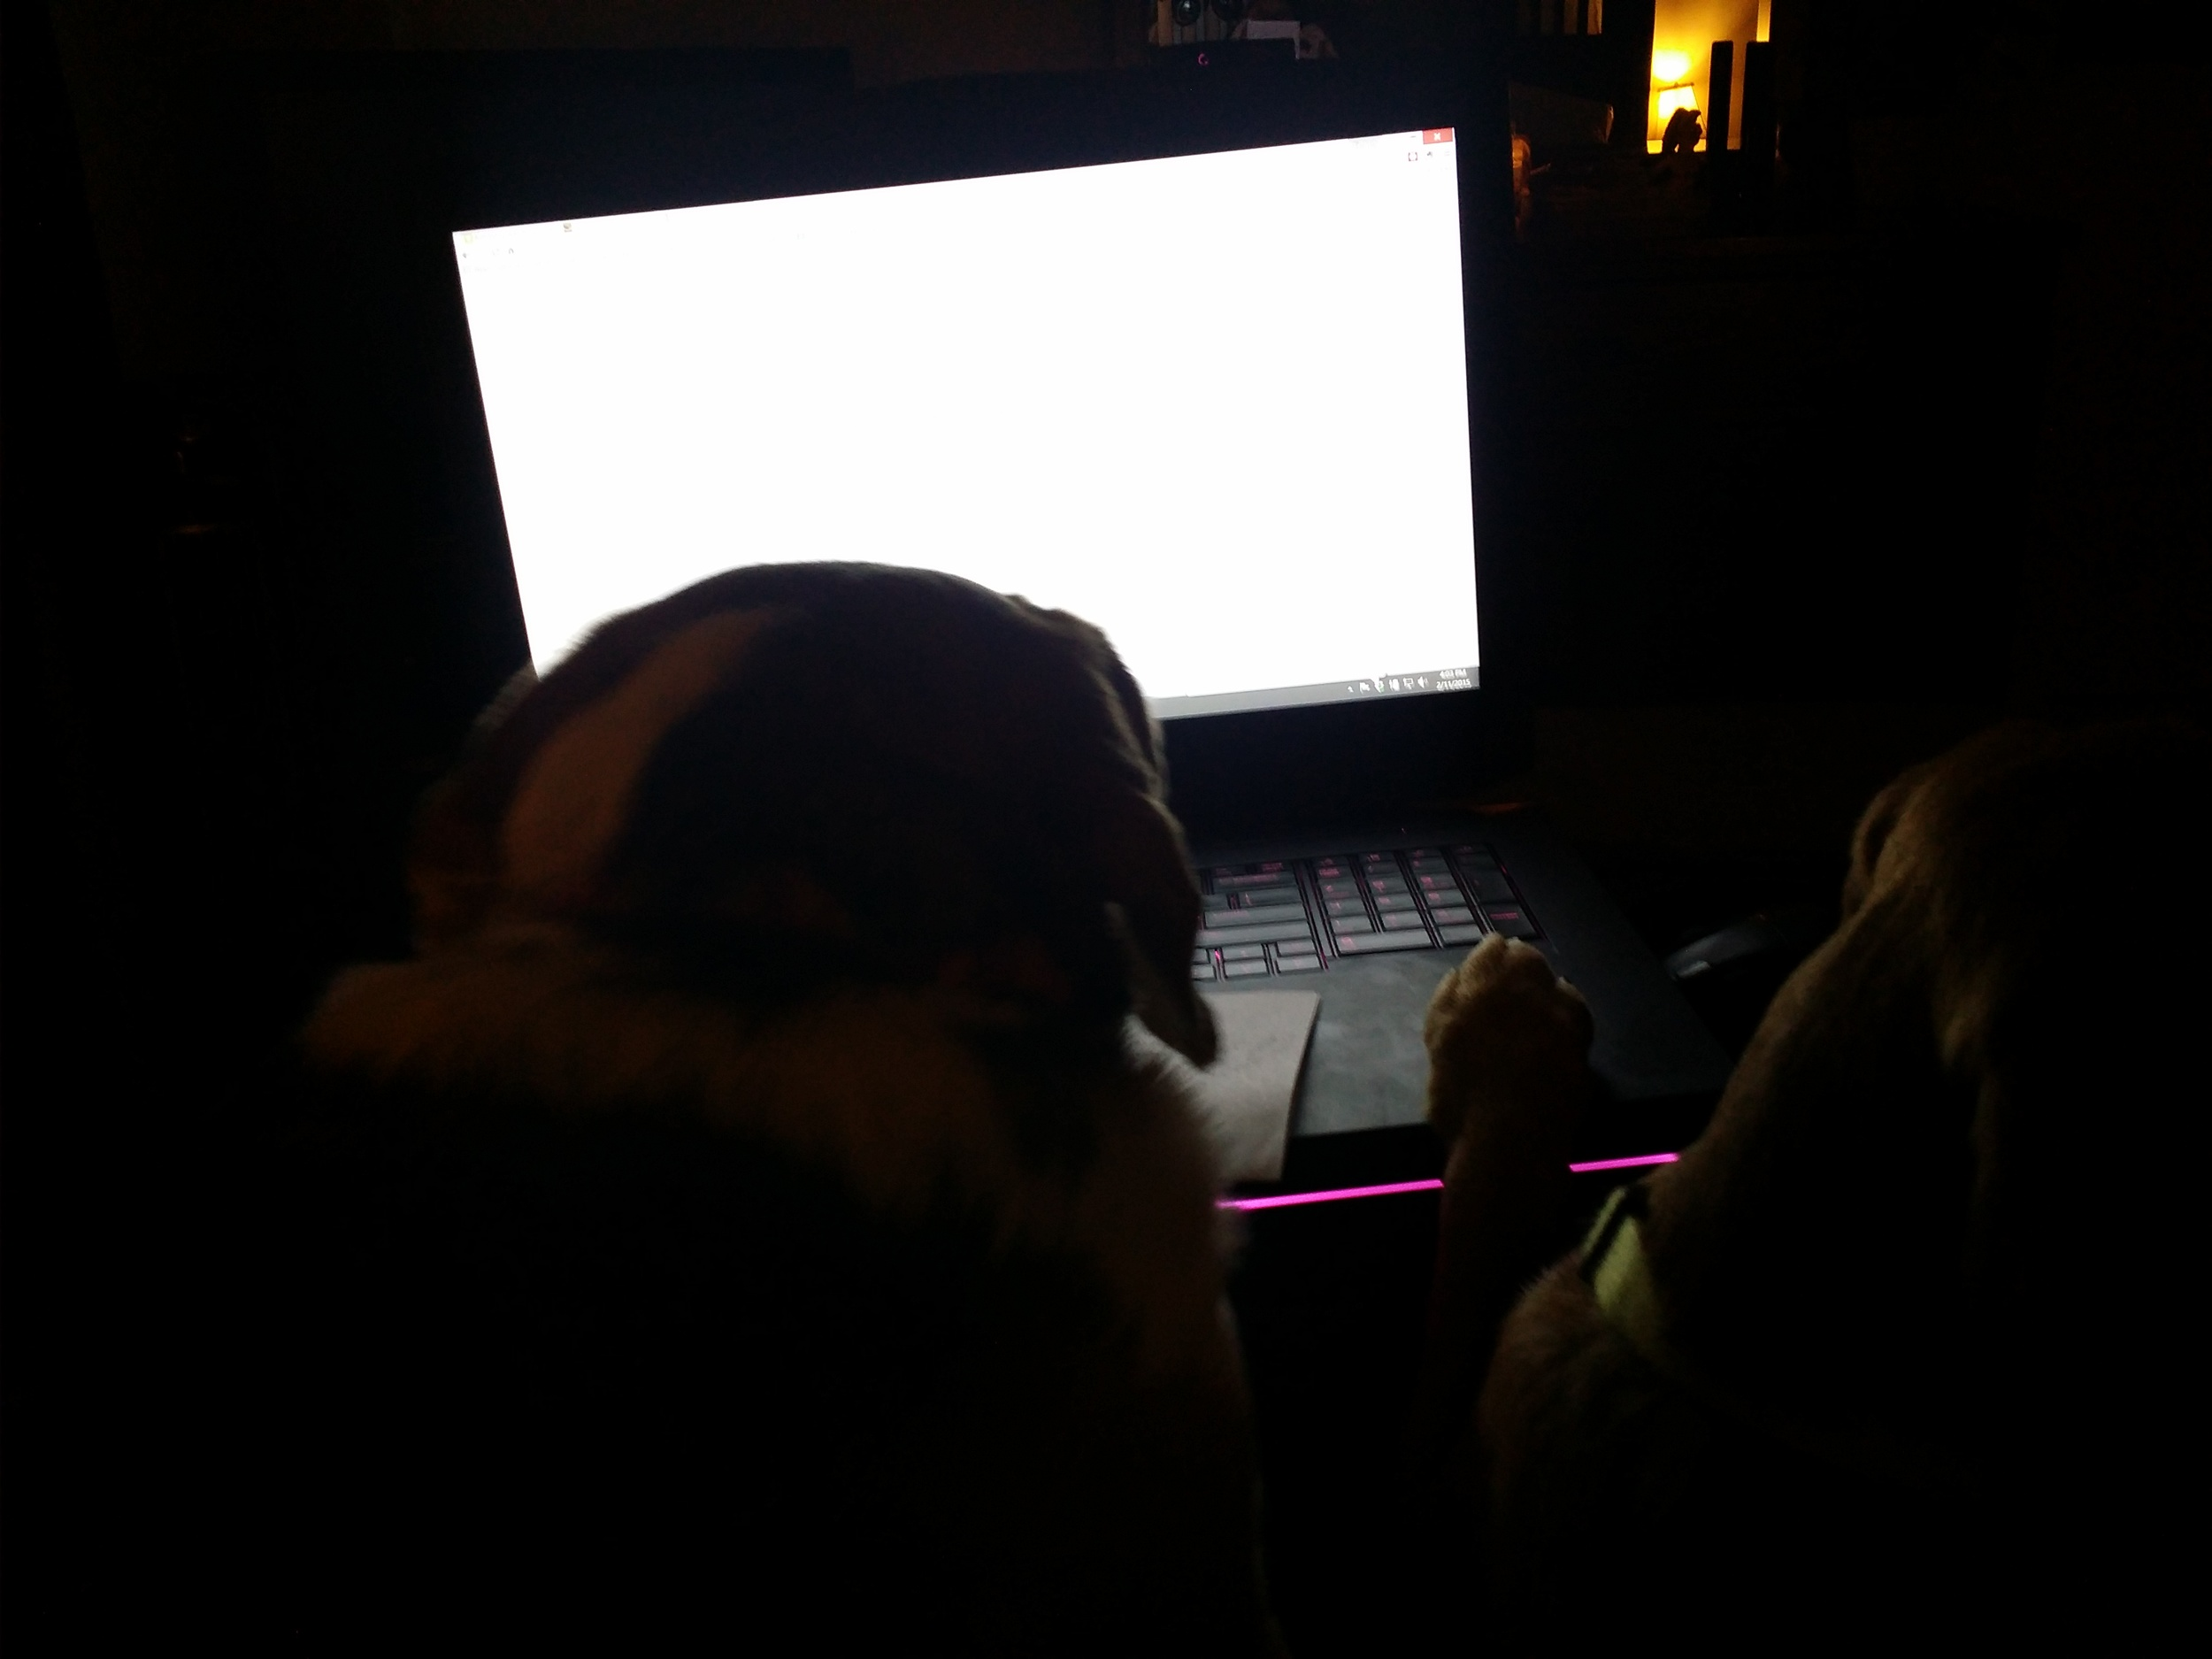 Beagles decided to game on my Laptop. *sigh*